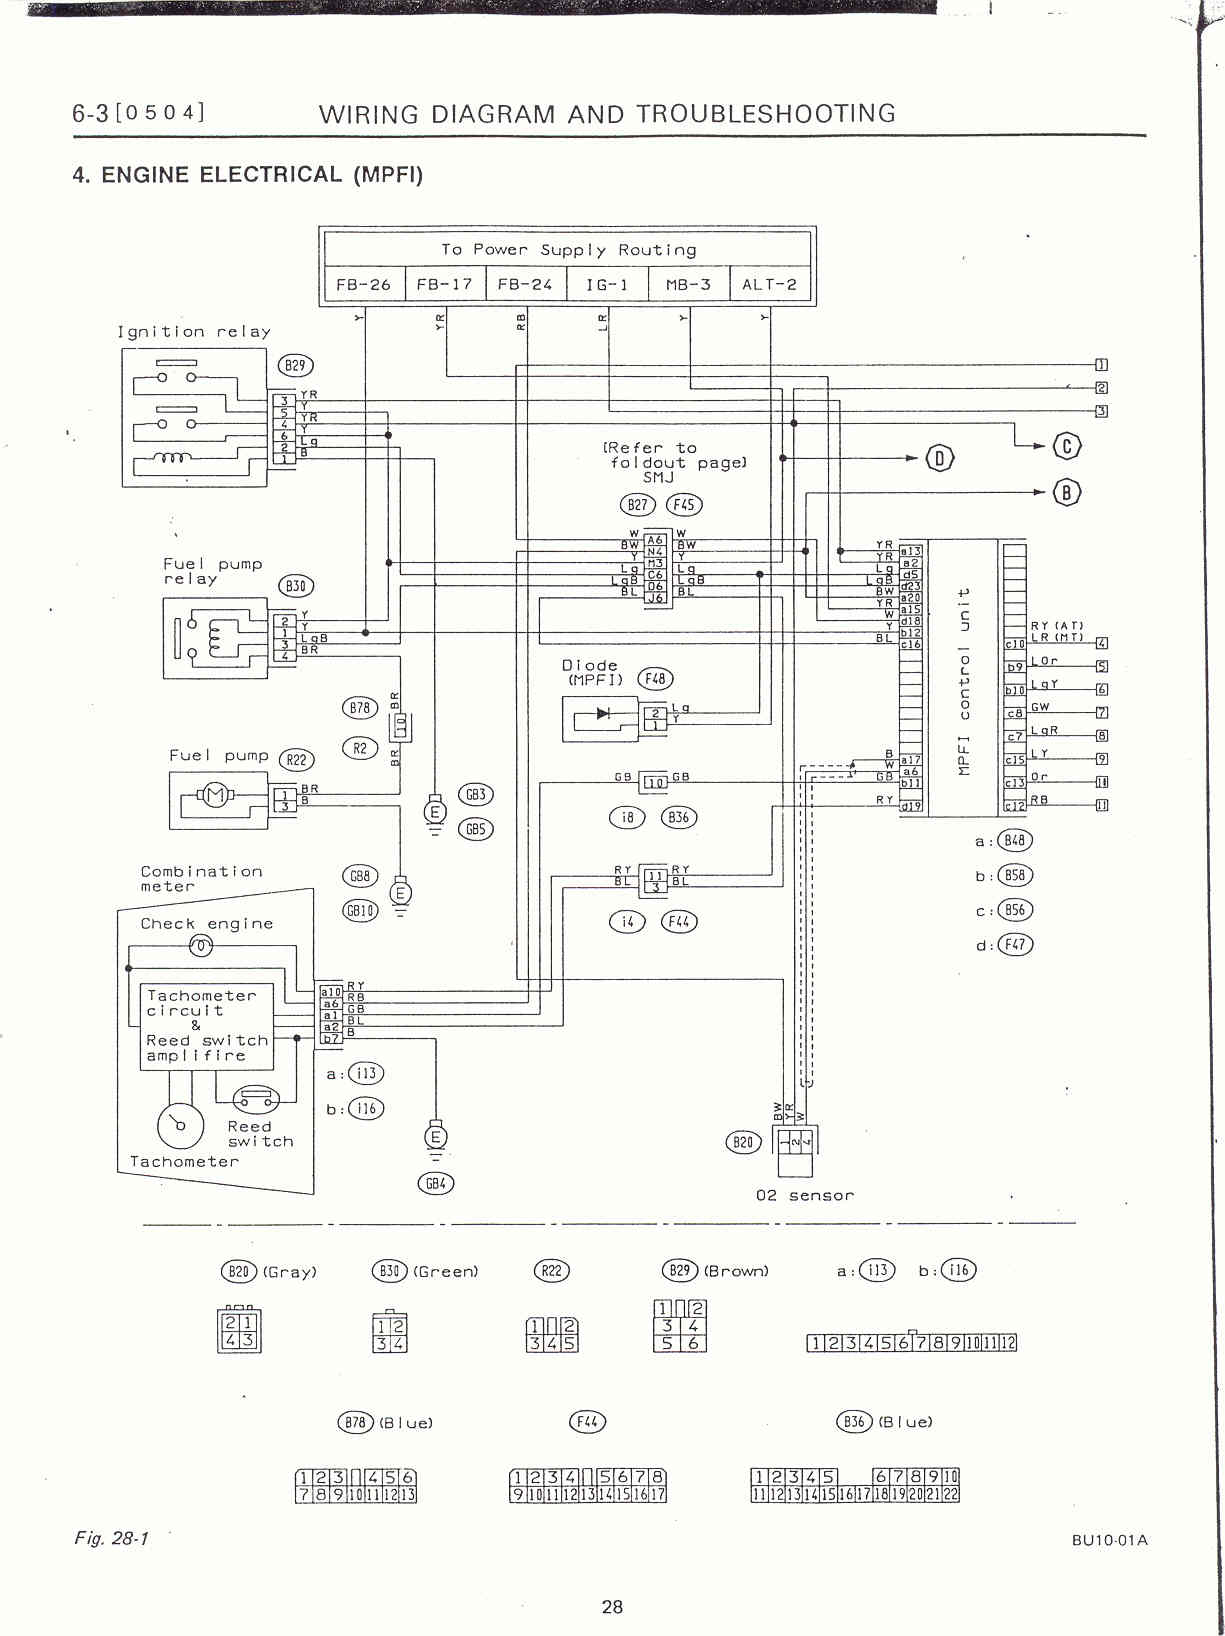 6fq70 Hyundai Sonata Gls 02 Sonata Gls Tryig Install likewise Honda Odyssey Transmission Wiring Diagram furthermore 2001 Nissan Pulsar Stereo Wiring Diagram besides 1126890 65 Ford F100 Wiring Diagrams further Fuse Box Location 1999 Harley Davidson Softail Wiring Diagrams. on dodge factory radio wiring diagram